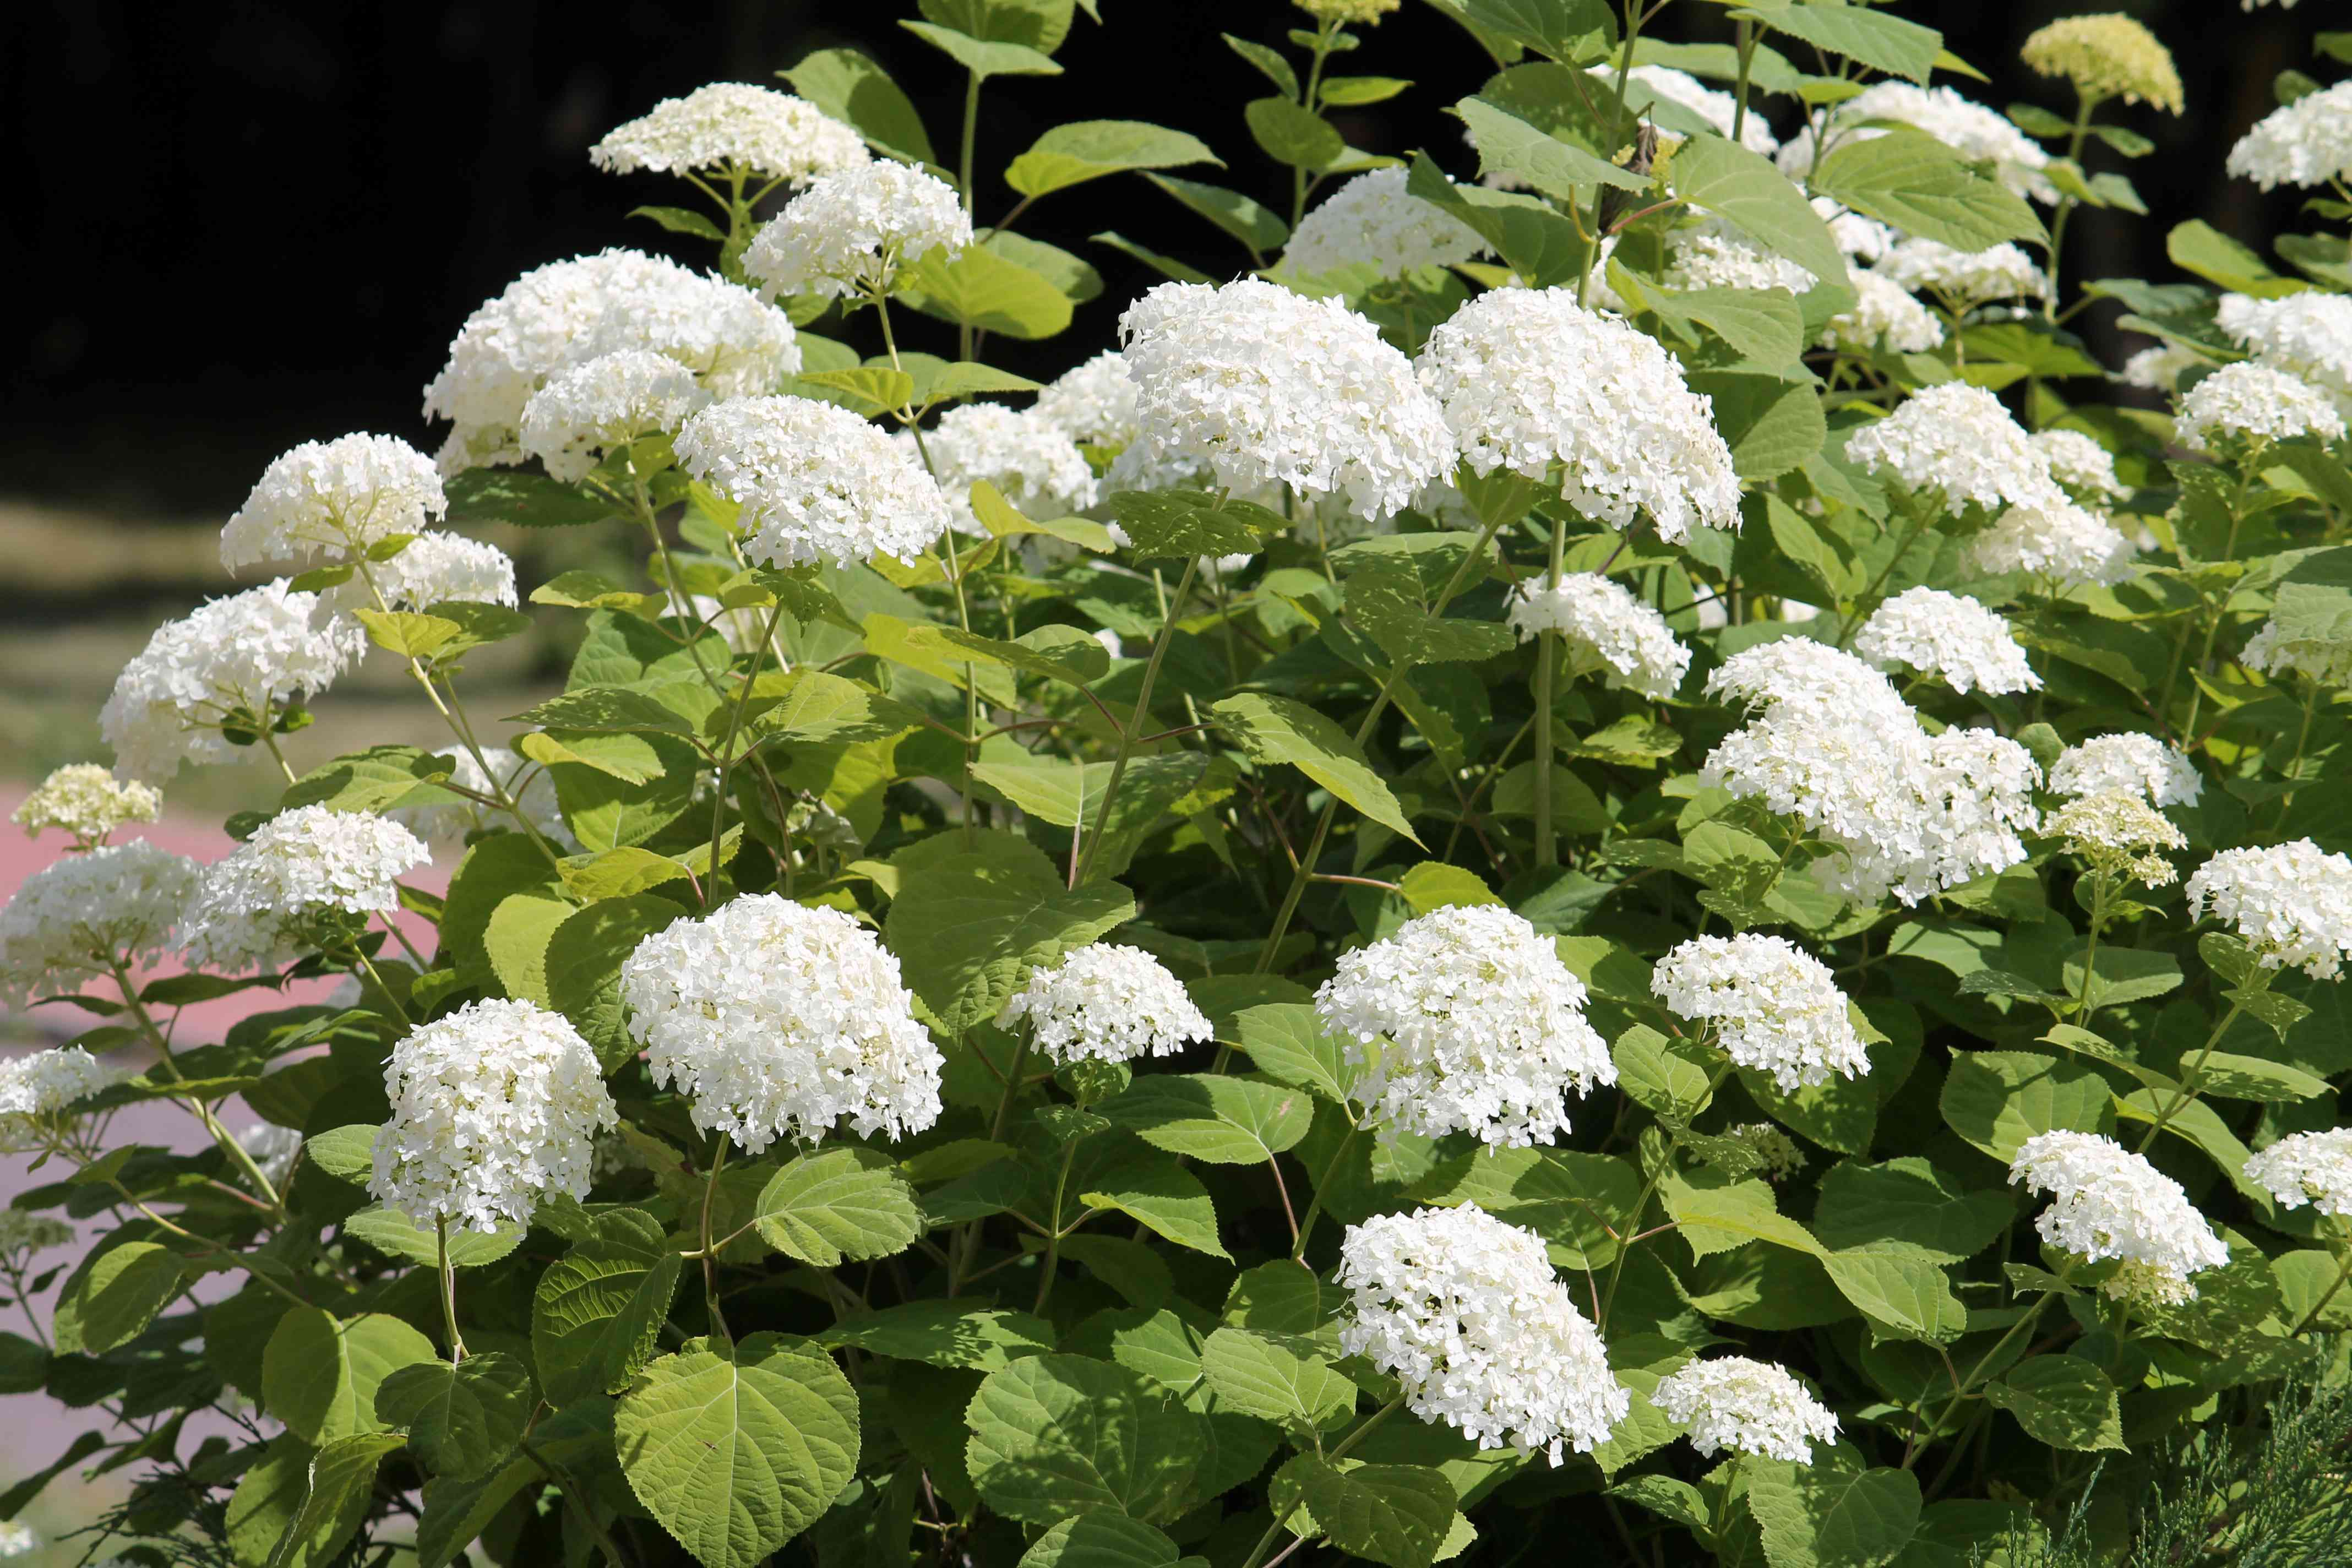 Smooth hydrangea plant with clusters of white flowers and large green leaves